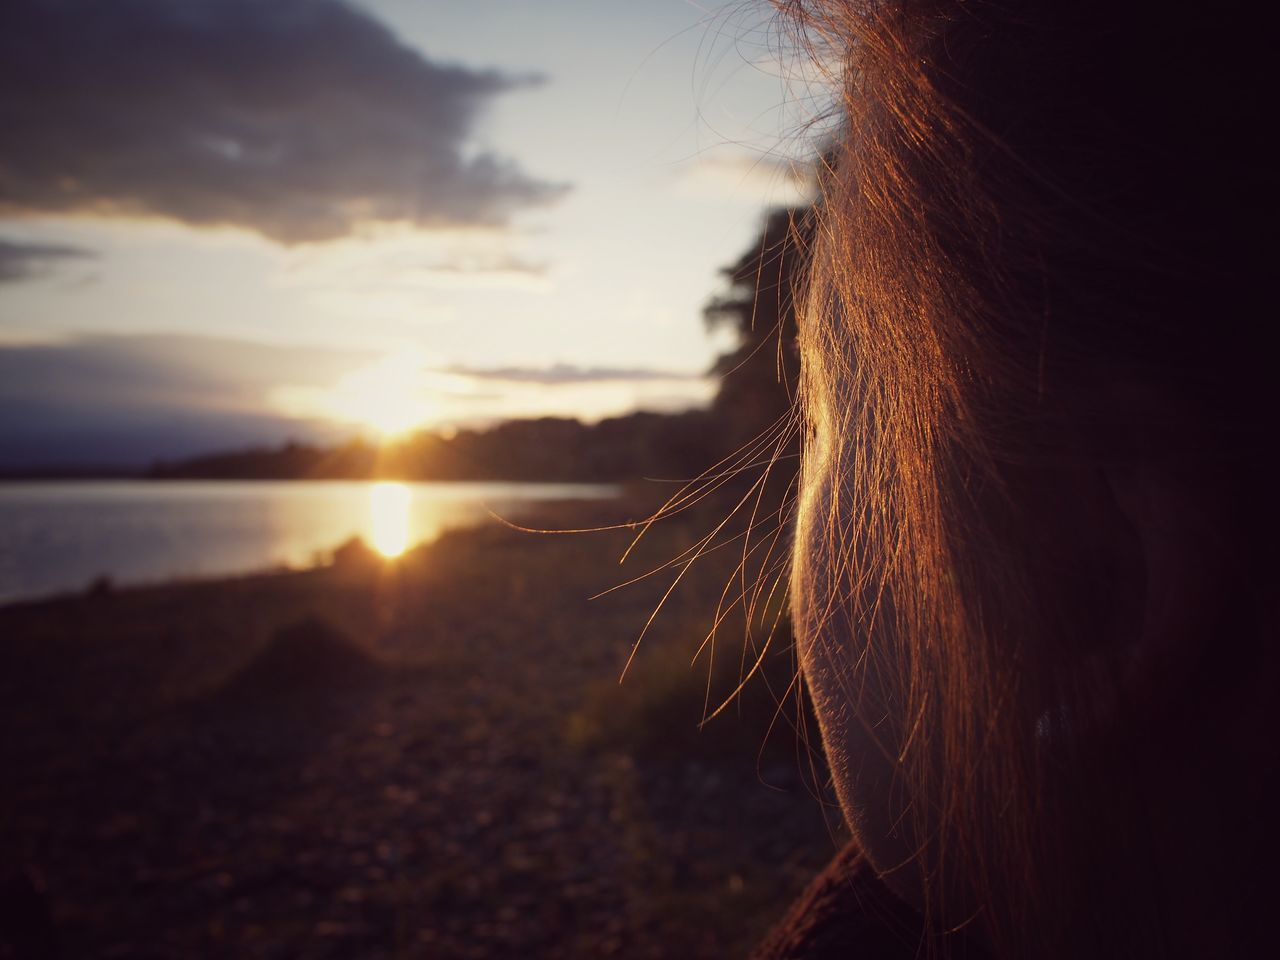 sunset, nature, sun, sky, outdoors, close-up, sunlight, scenics, beauty in nature, one person, day, people